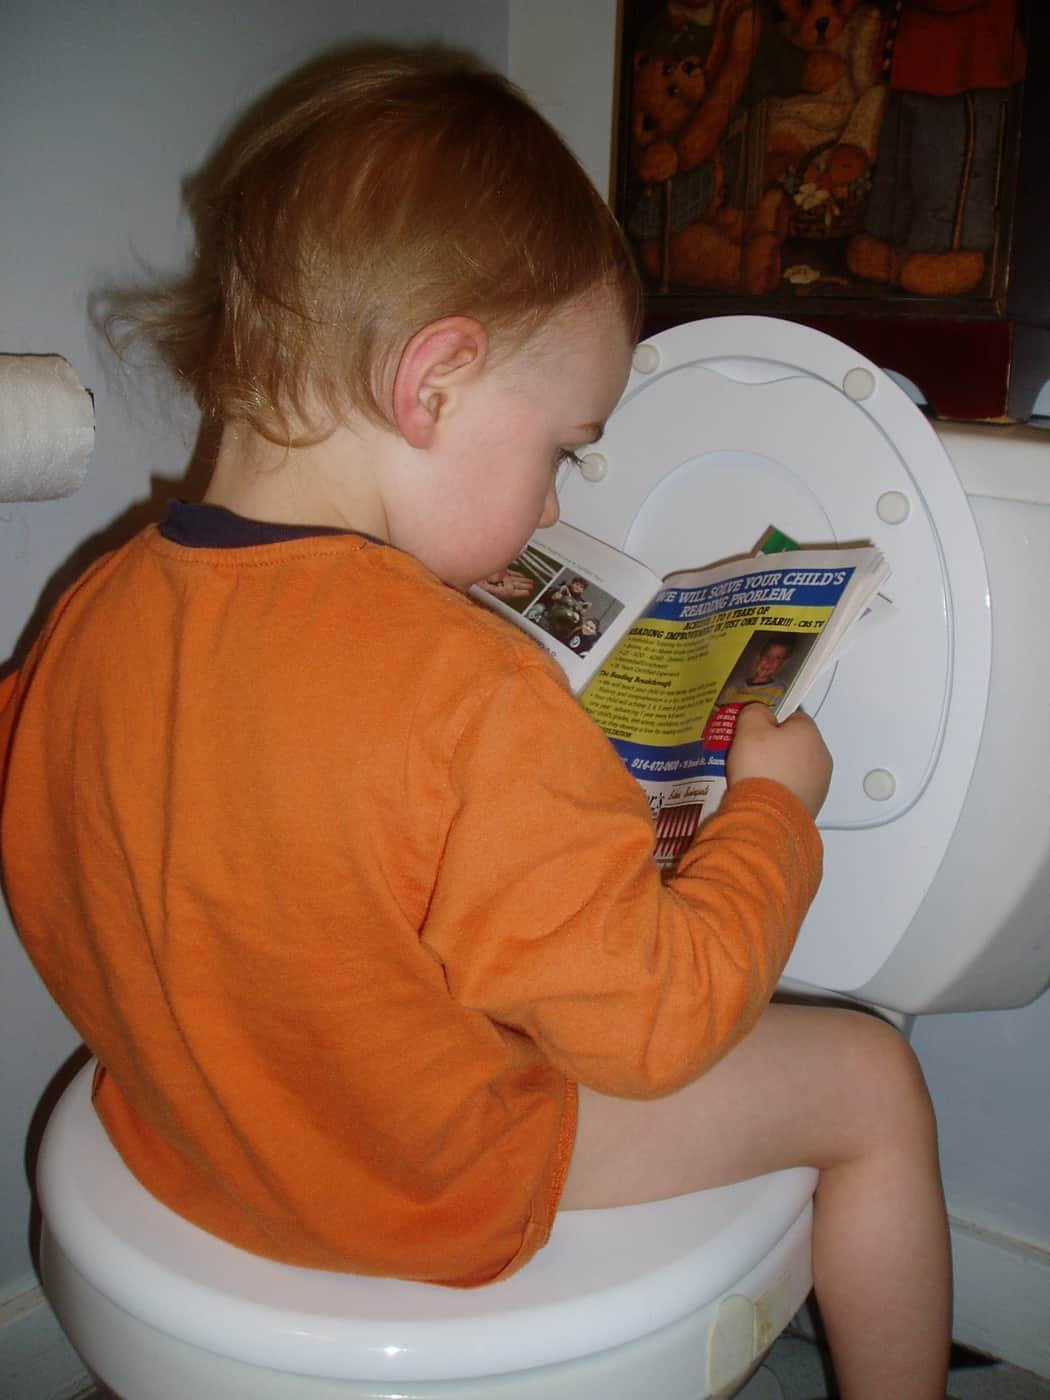 Easy Potty Training On Their Own Terms